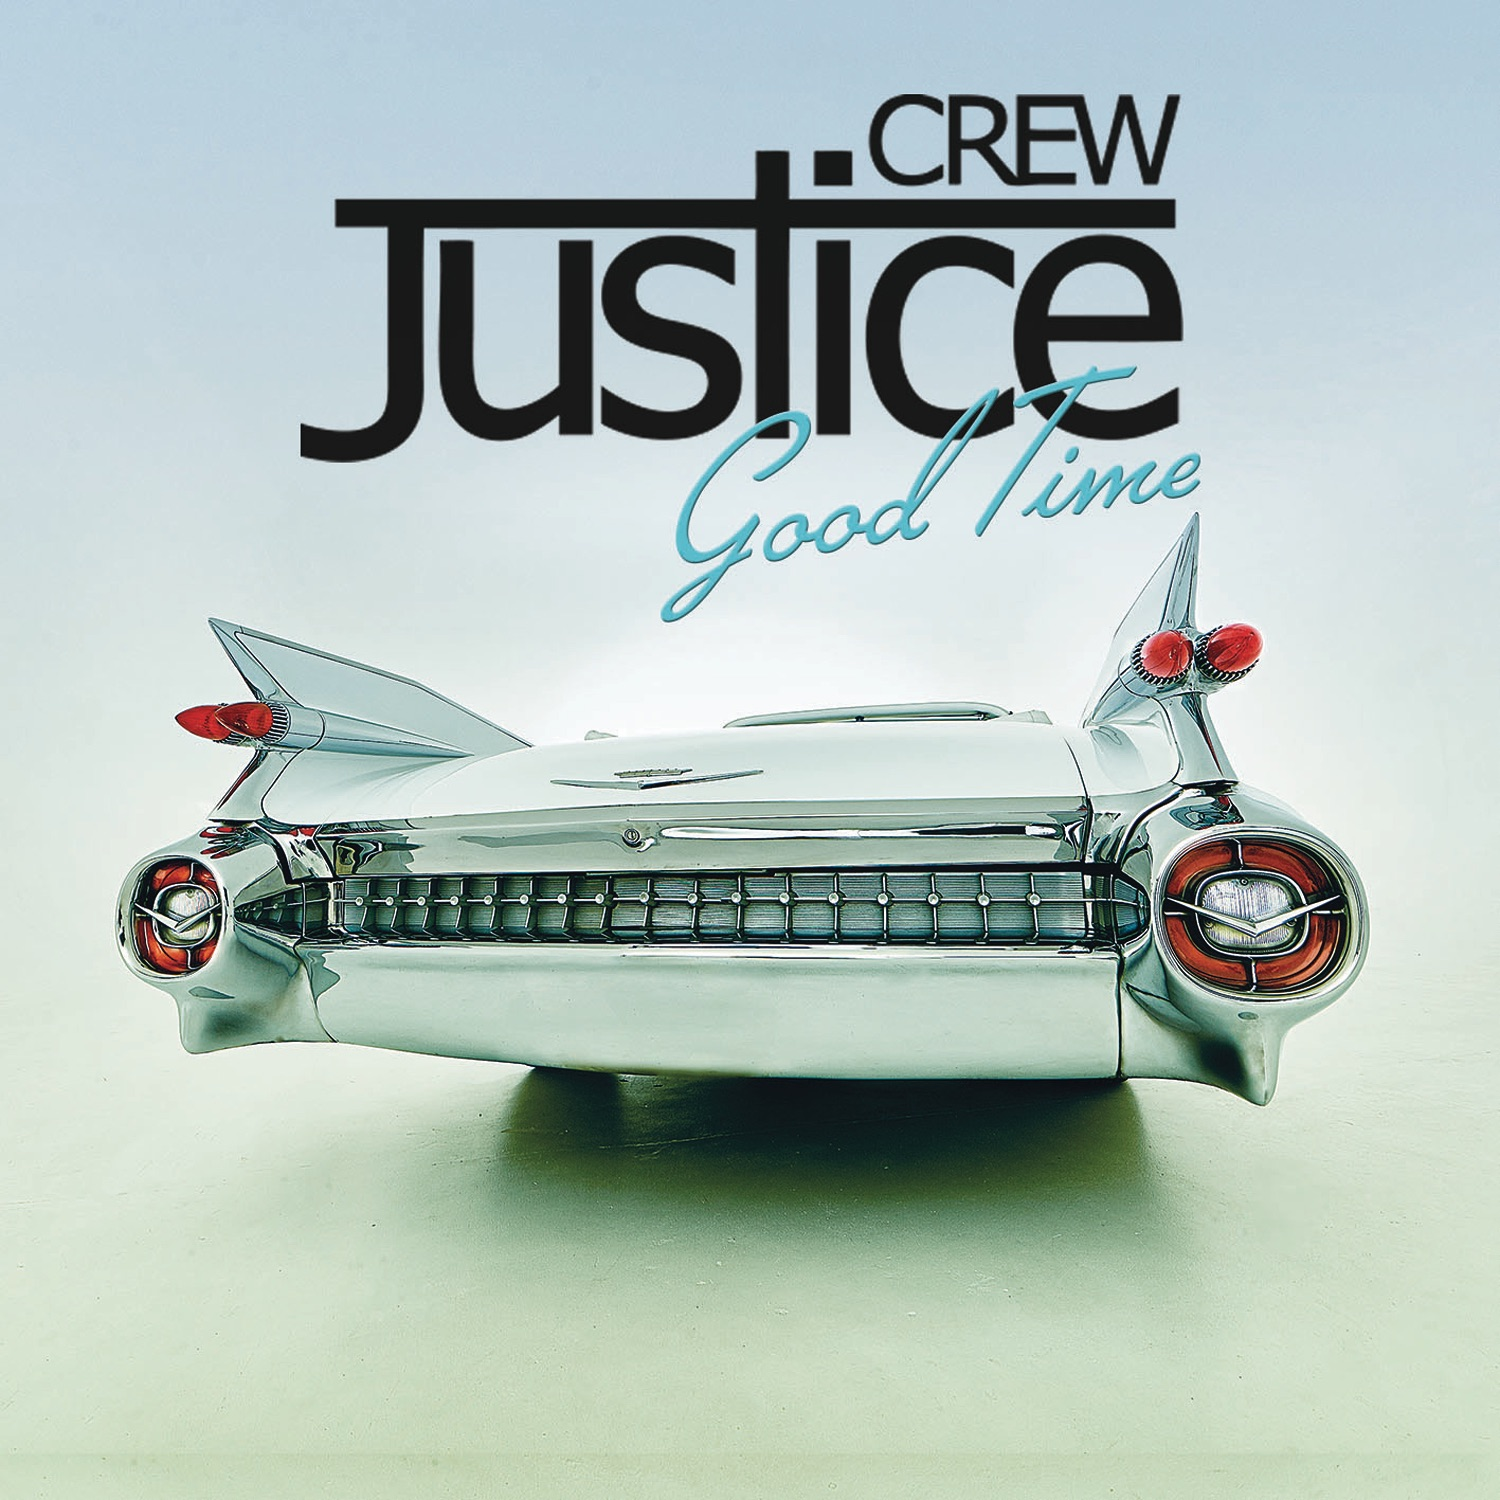 Good Time - Single by Justice Crew on iTunes